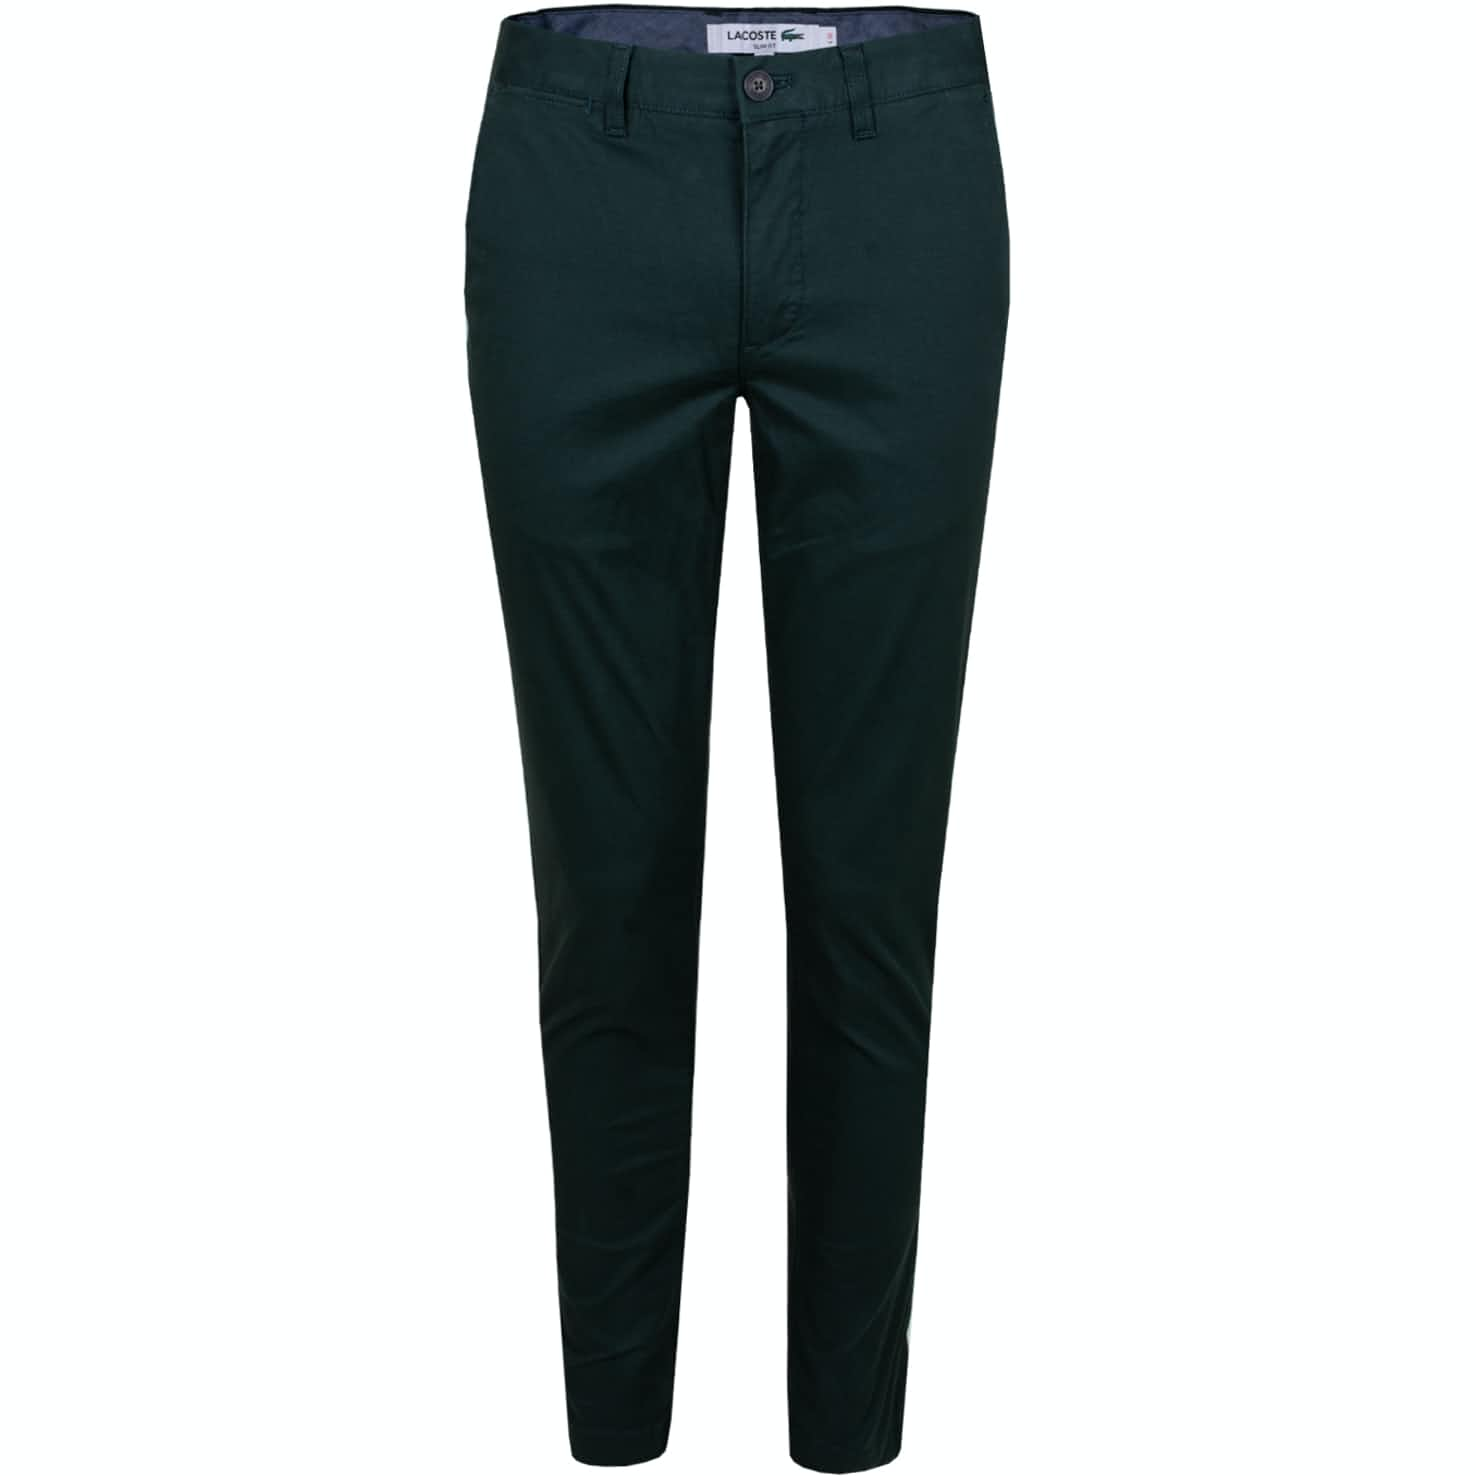 Lacoste Classic Slim Fit Chino Sinople - AW19